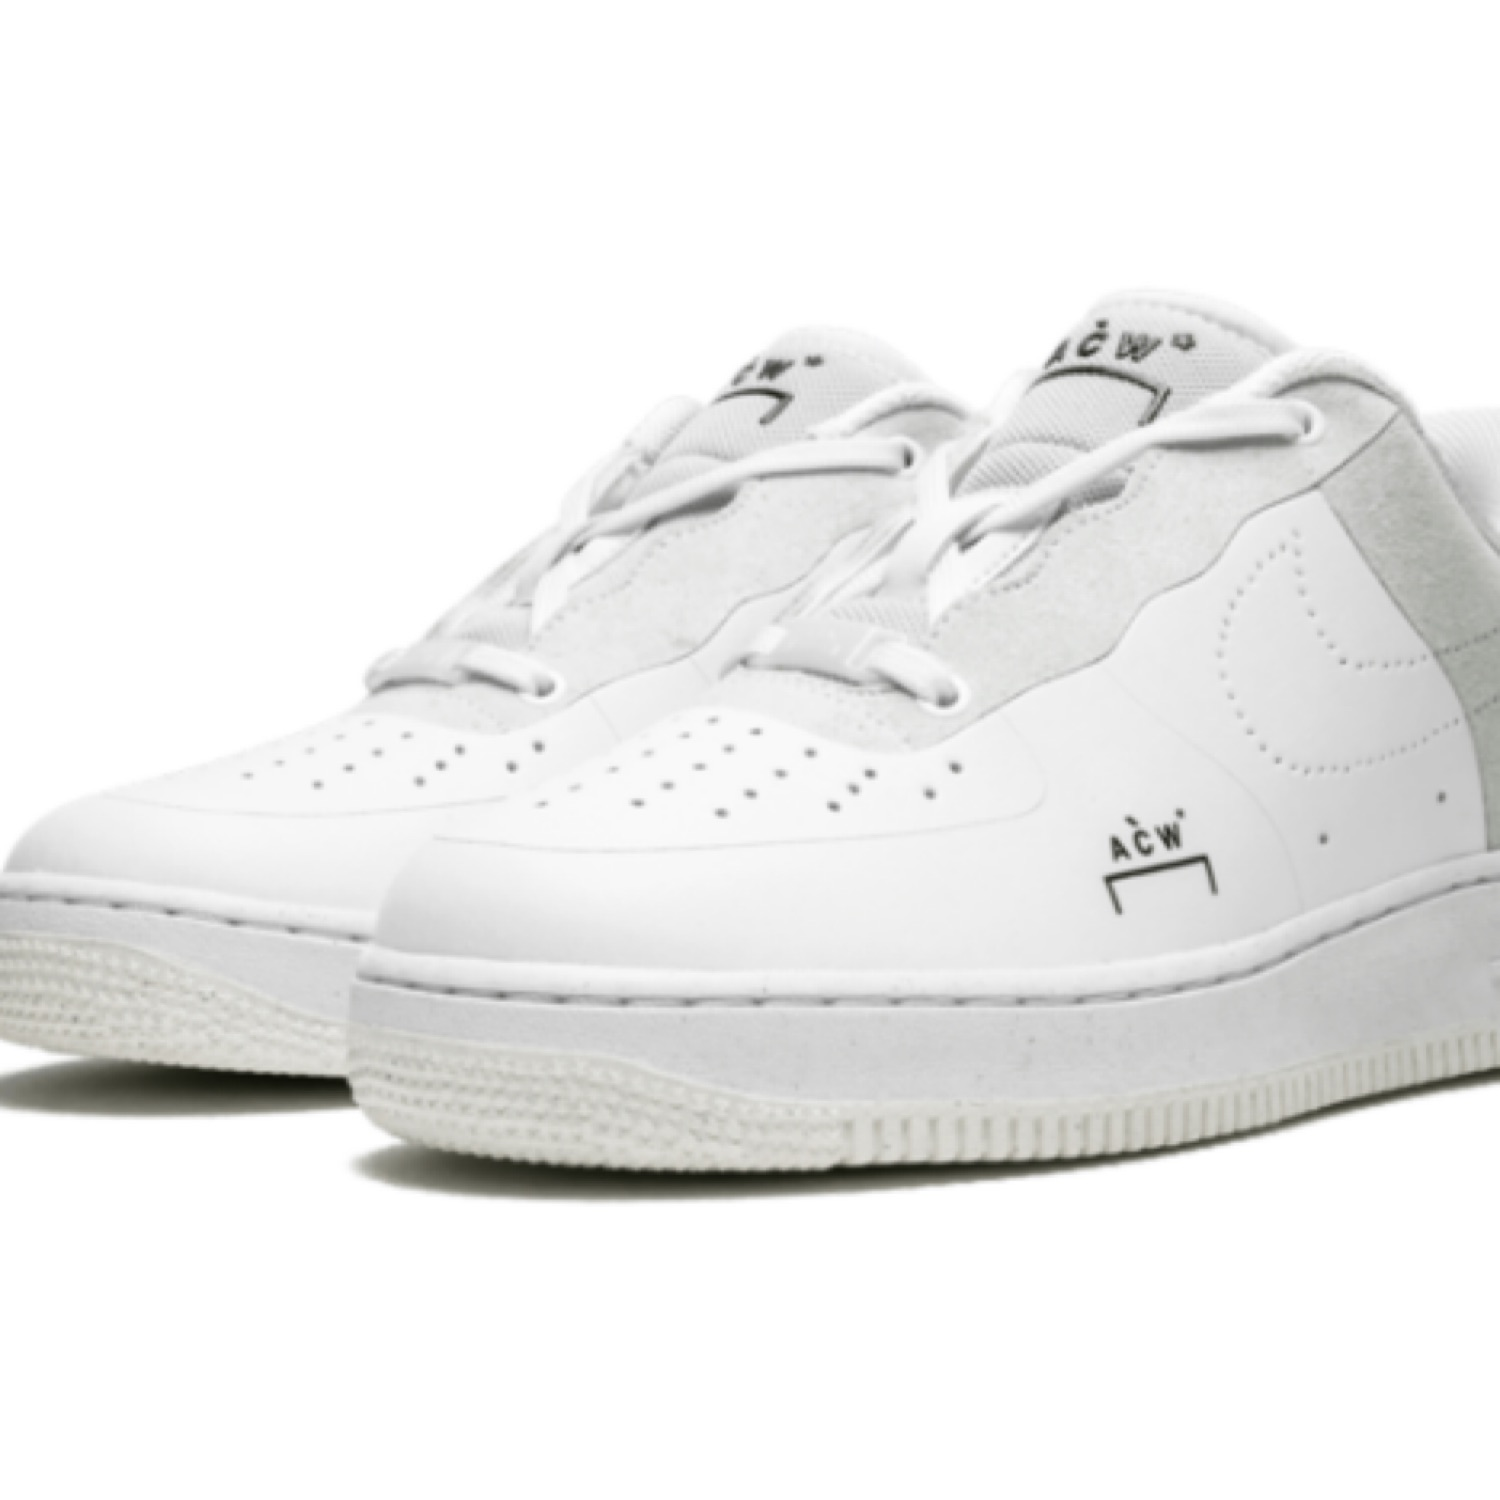 A COLD WALL x Nike Air Force 1 – Low Profile Store